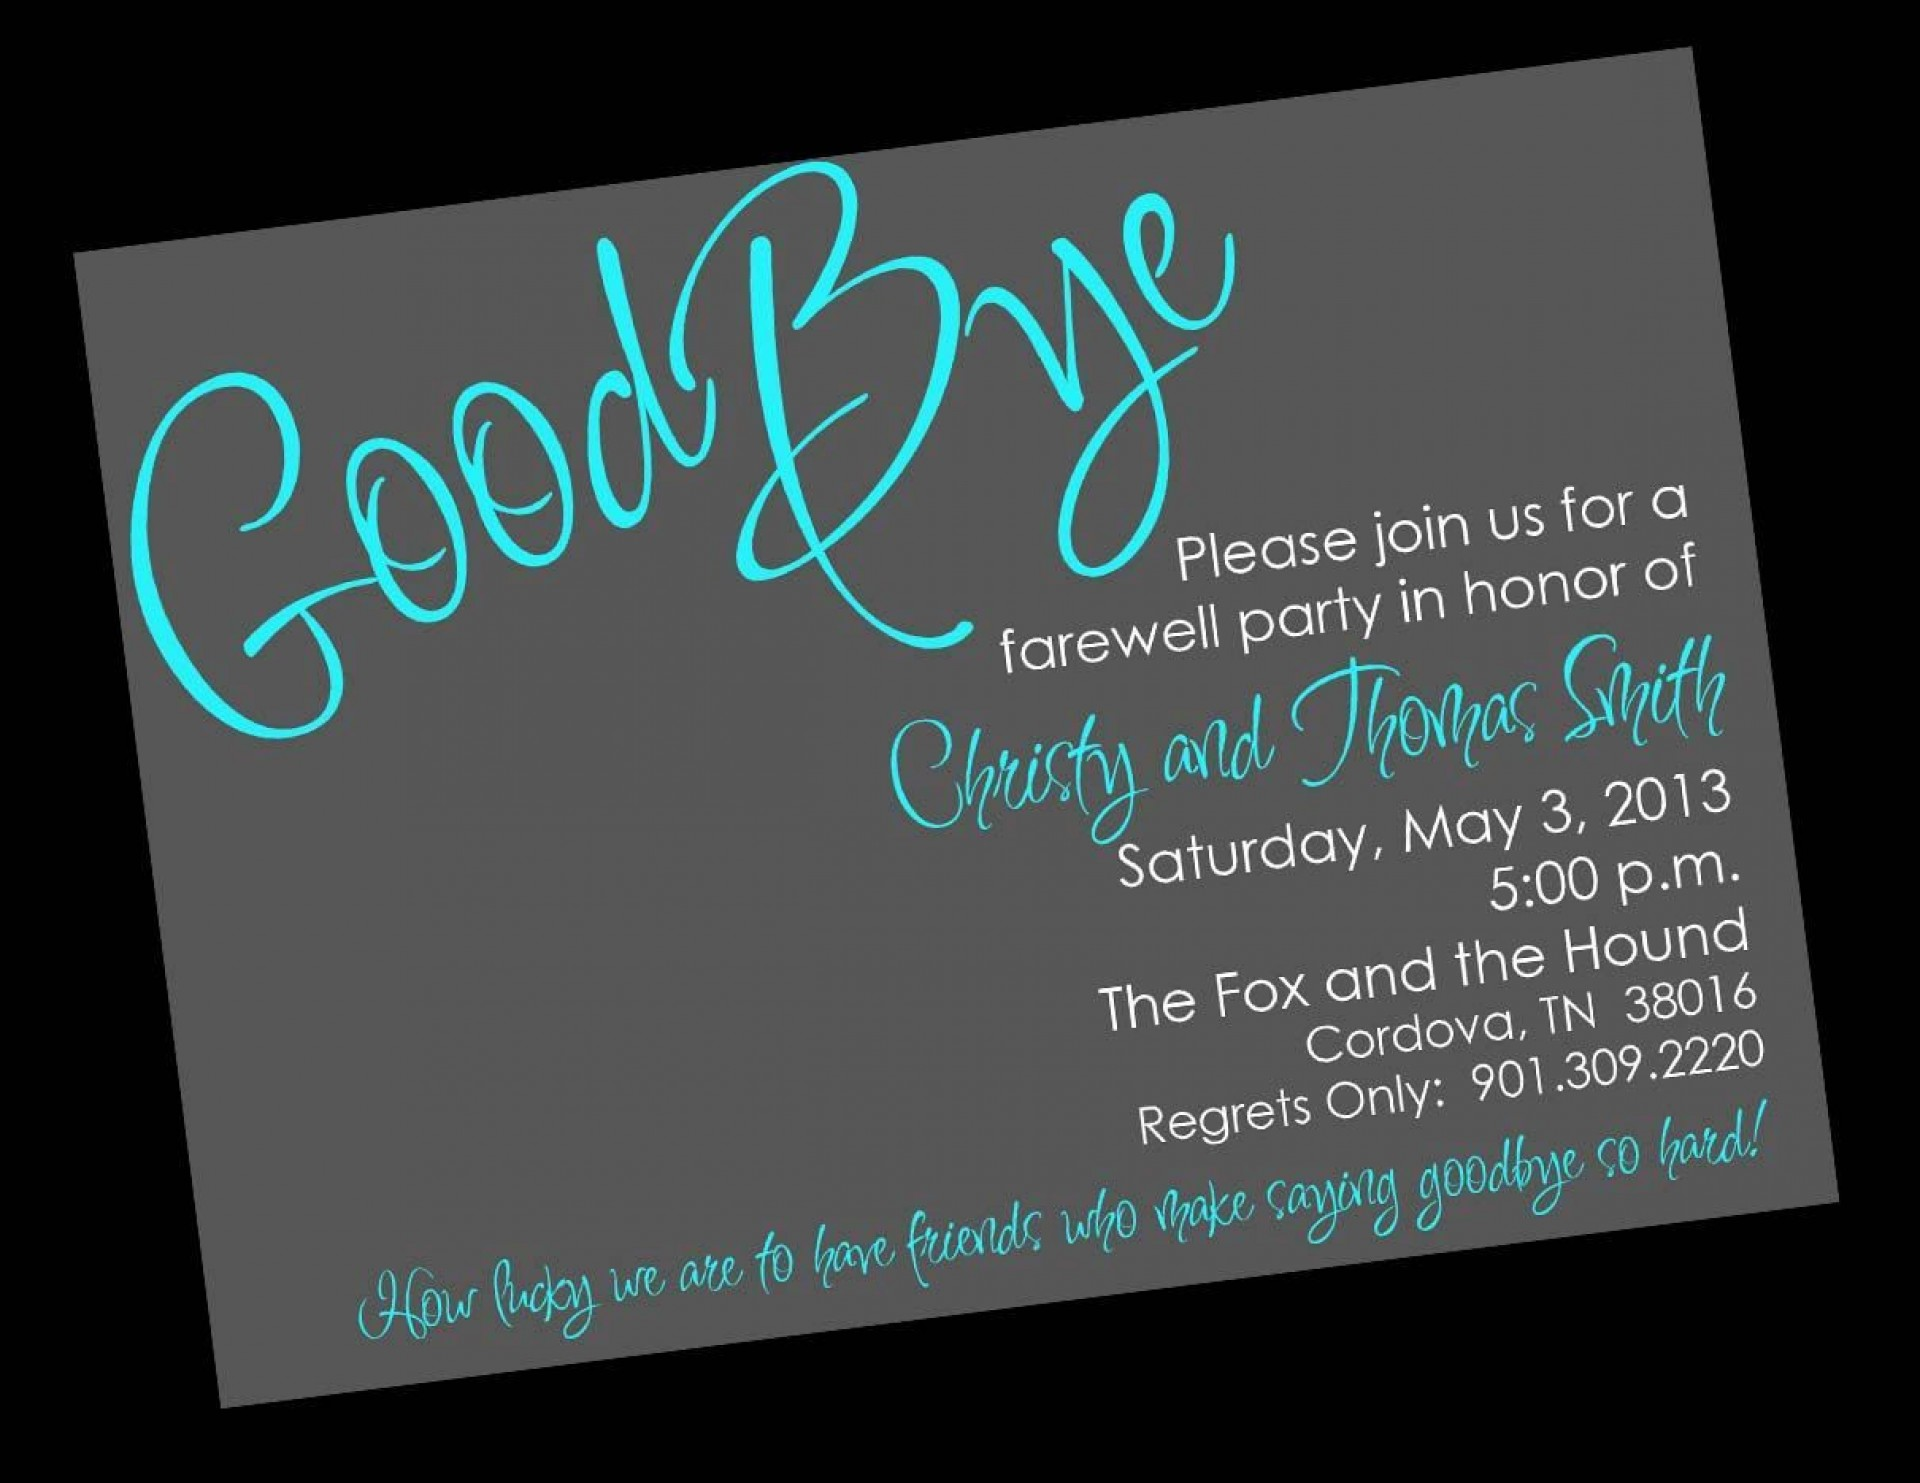 003 Top Retirement Farewell Party Invitation Template Free Image 1920